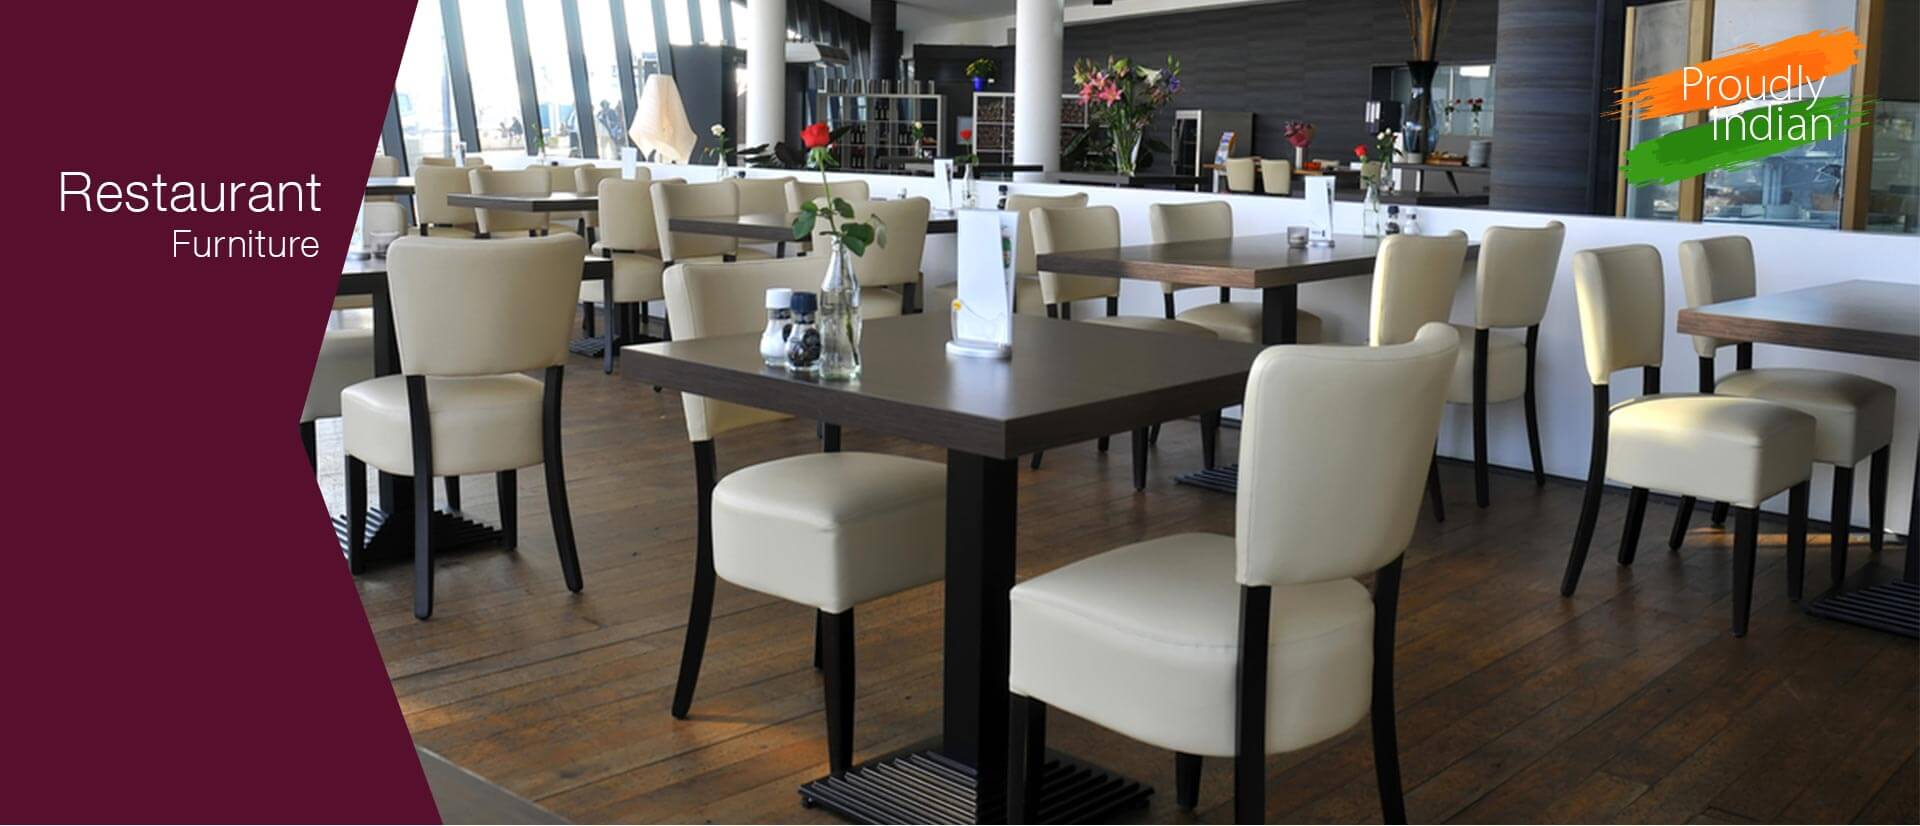 Restaurant Furniture Manufacturers in Bangalore